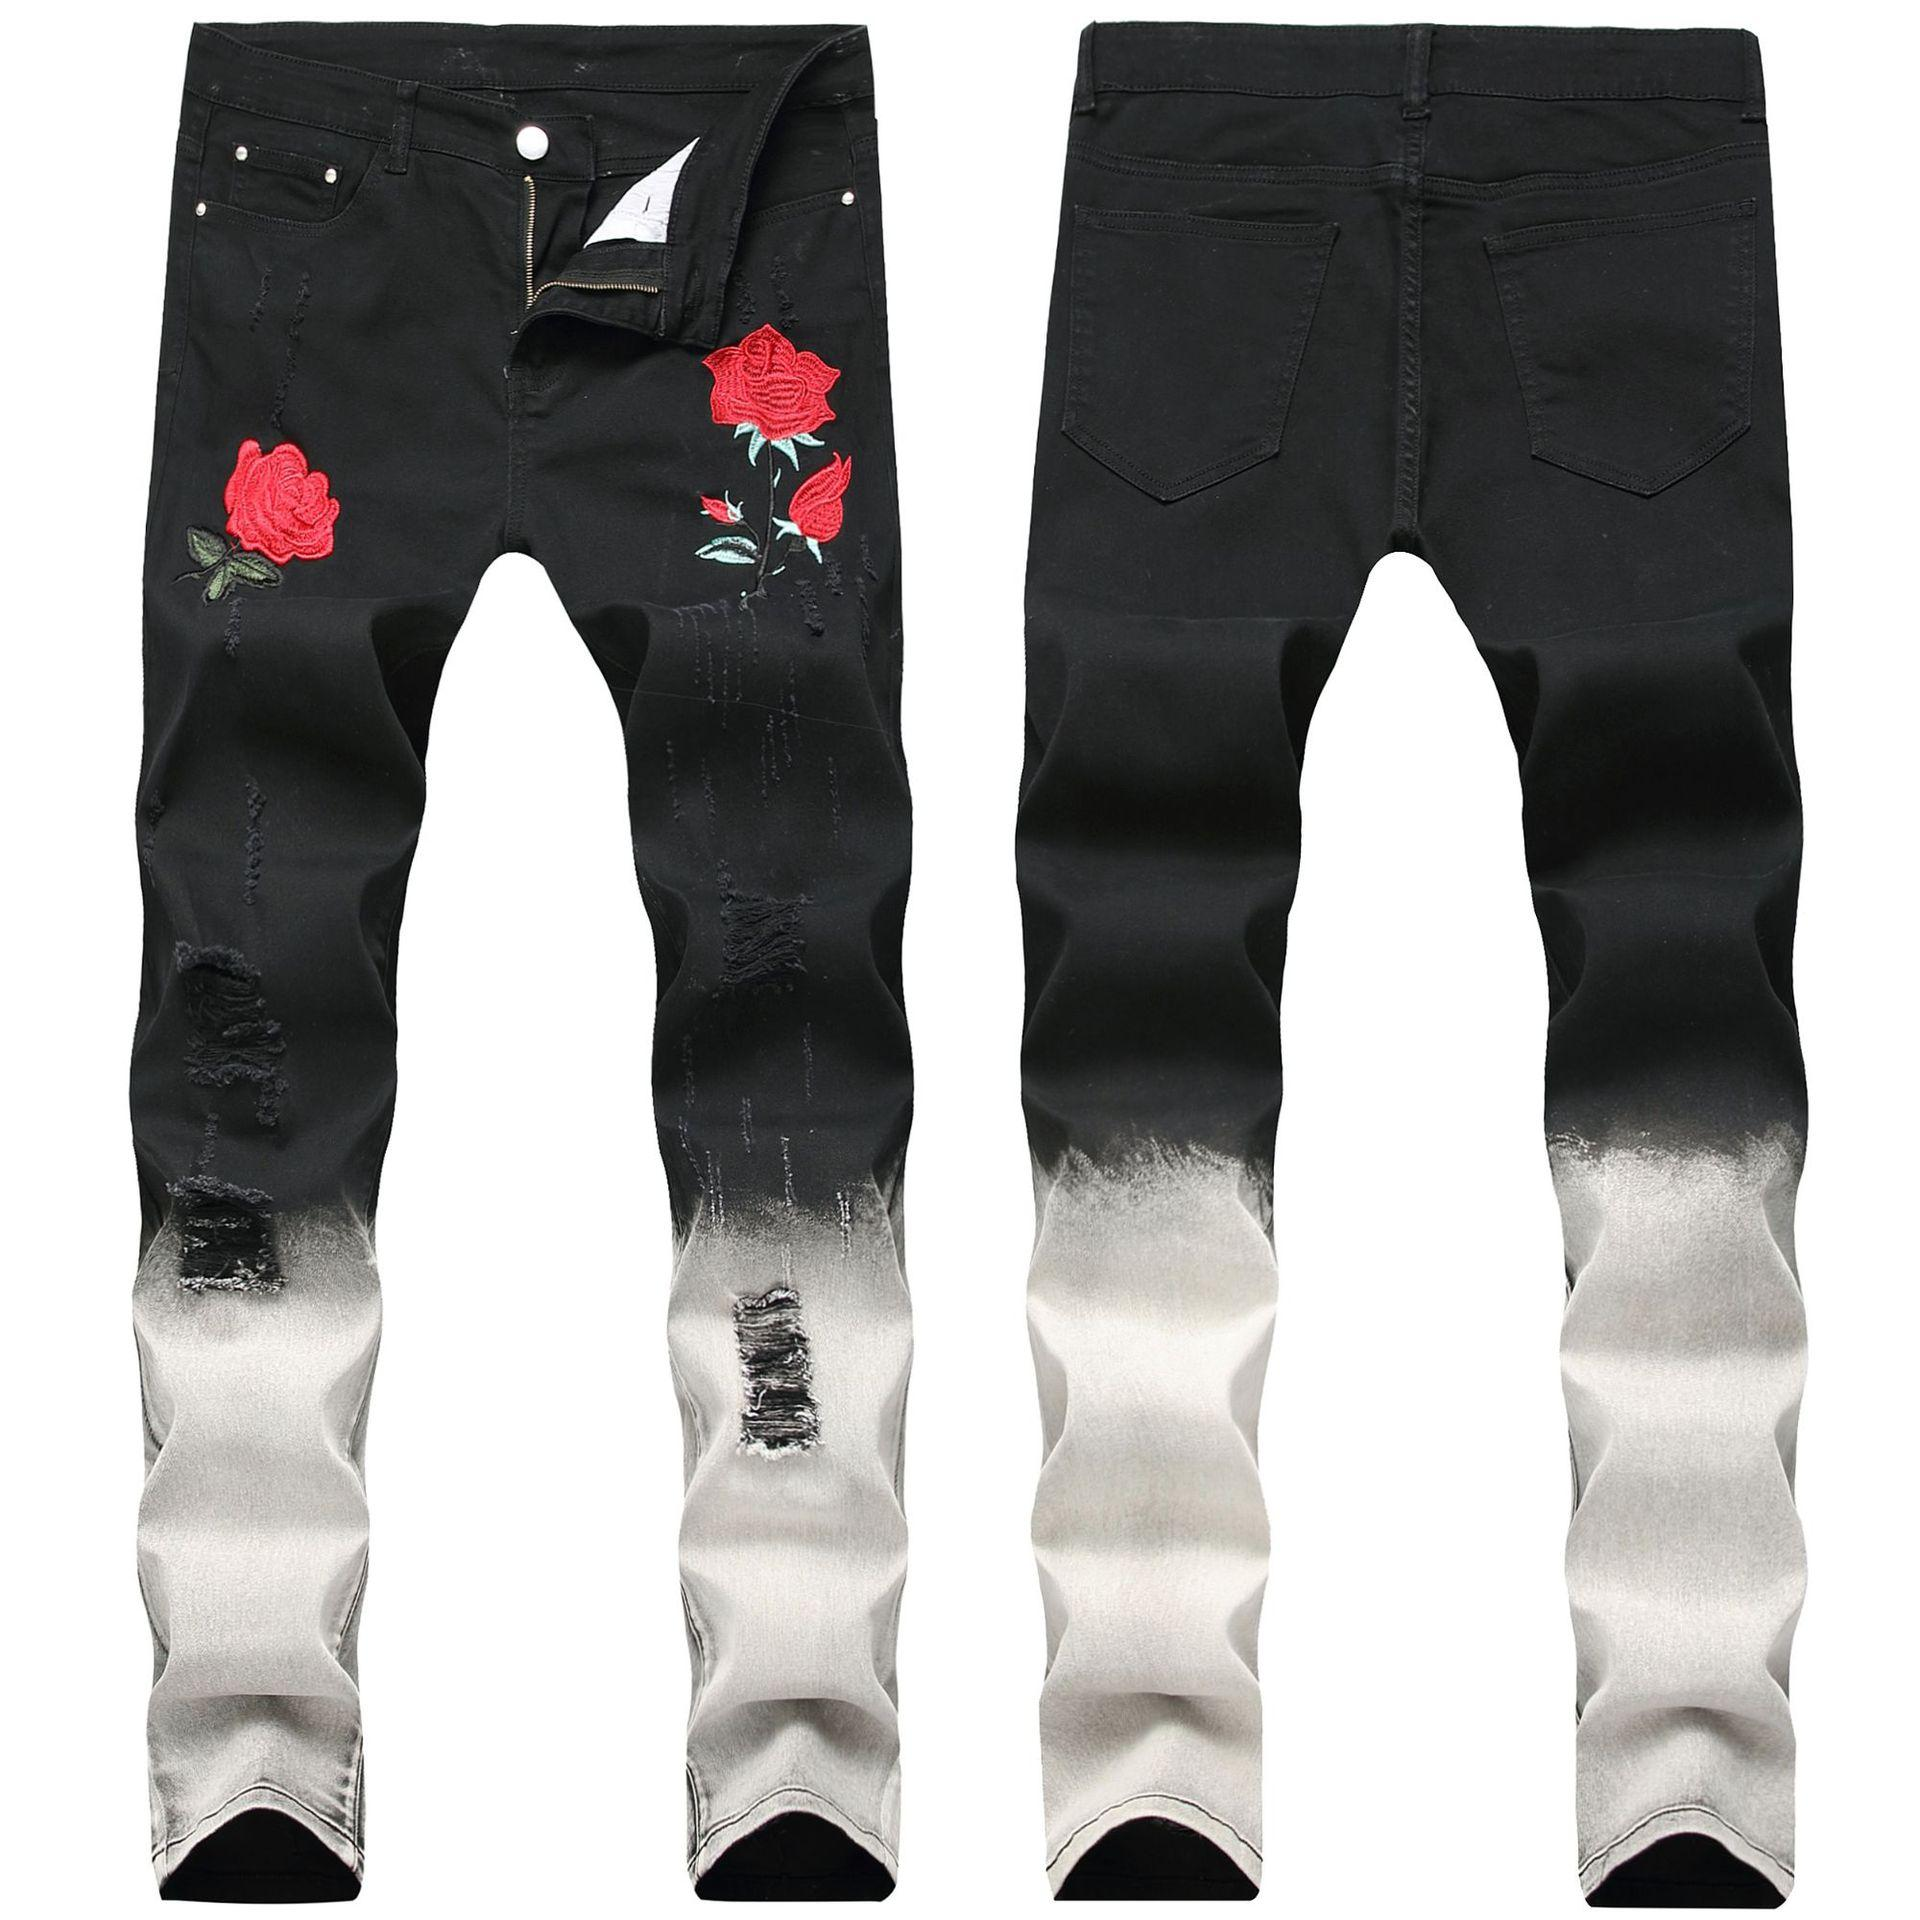 Ricamate Jeans Jeans Con Rose Rose Con Uomo VpSzMqU